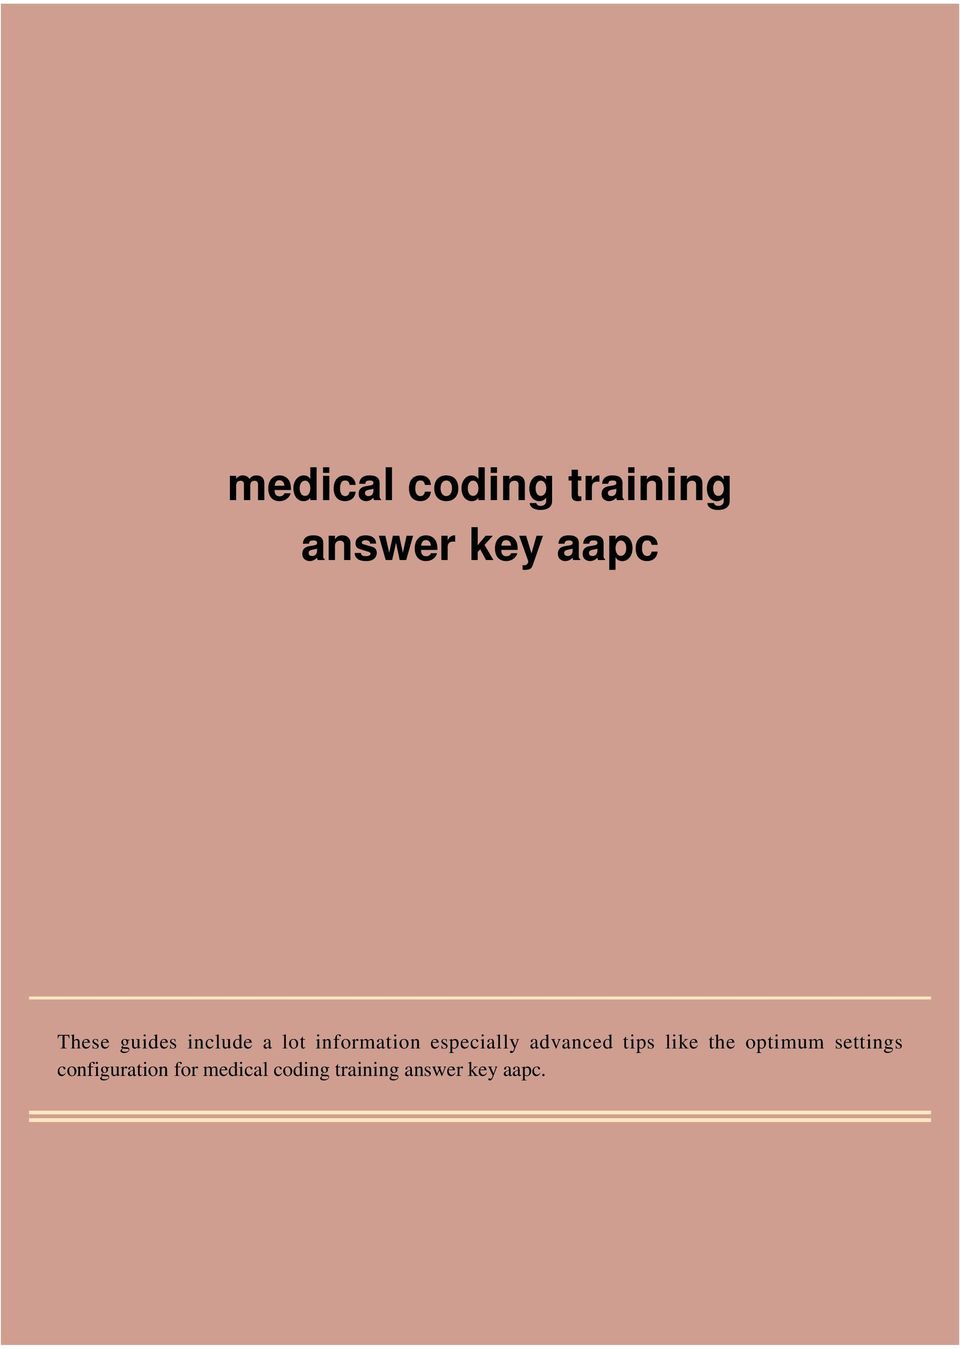 Medical coding training answer key aapc pdf transcription fandeluxe Images